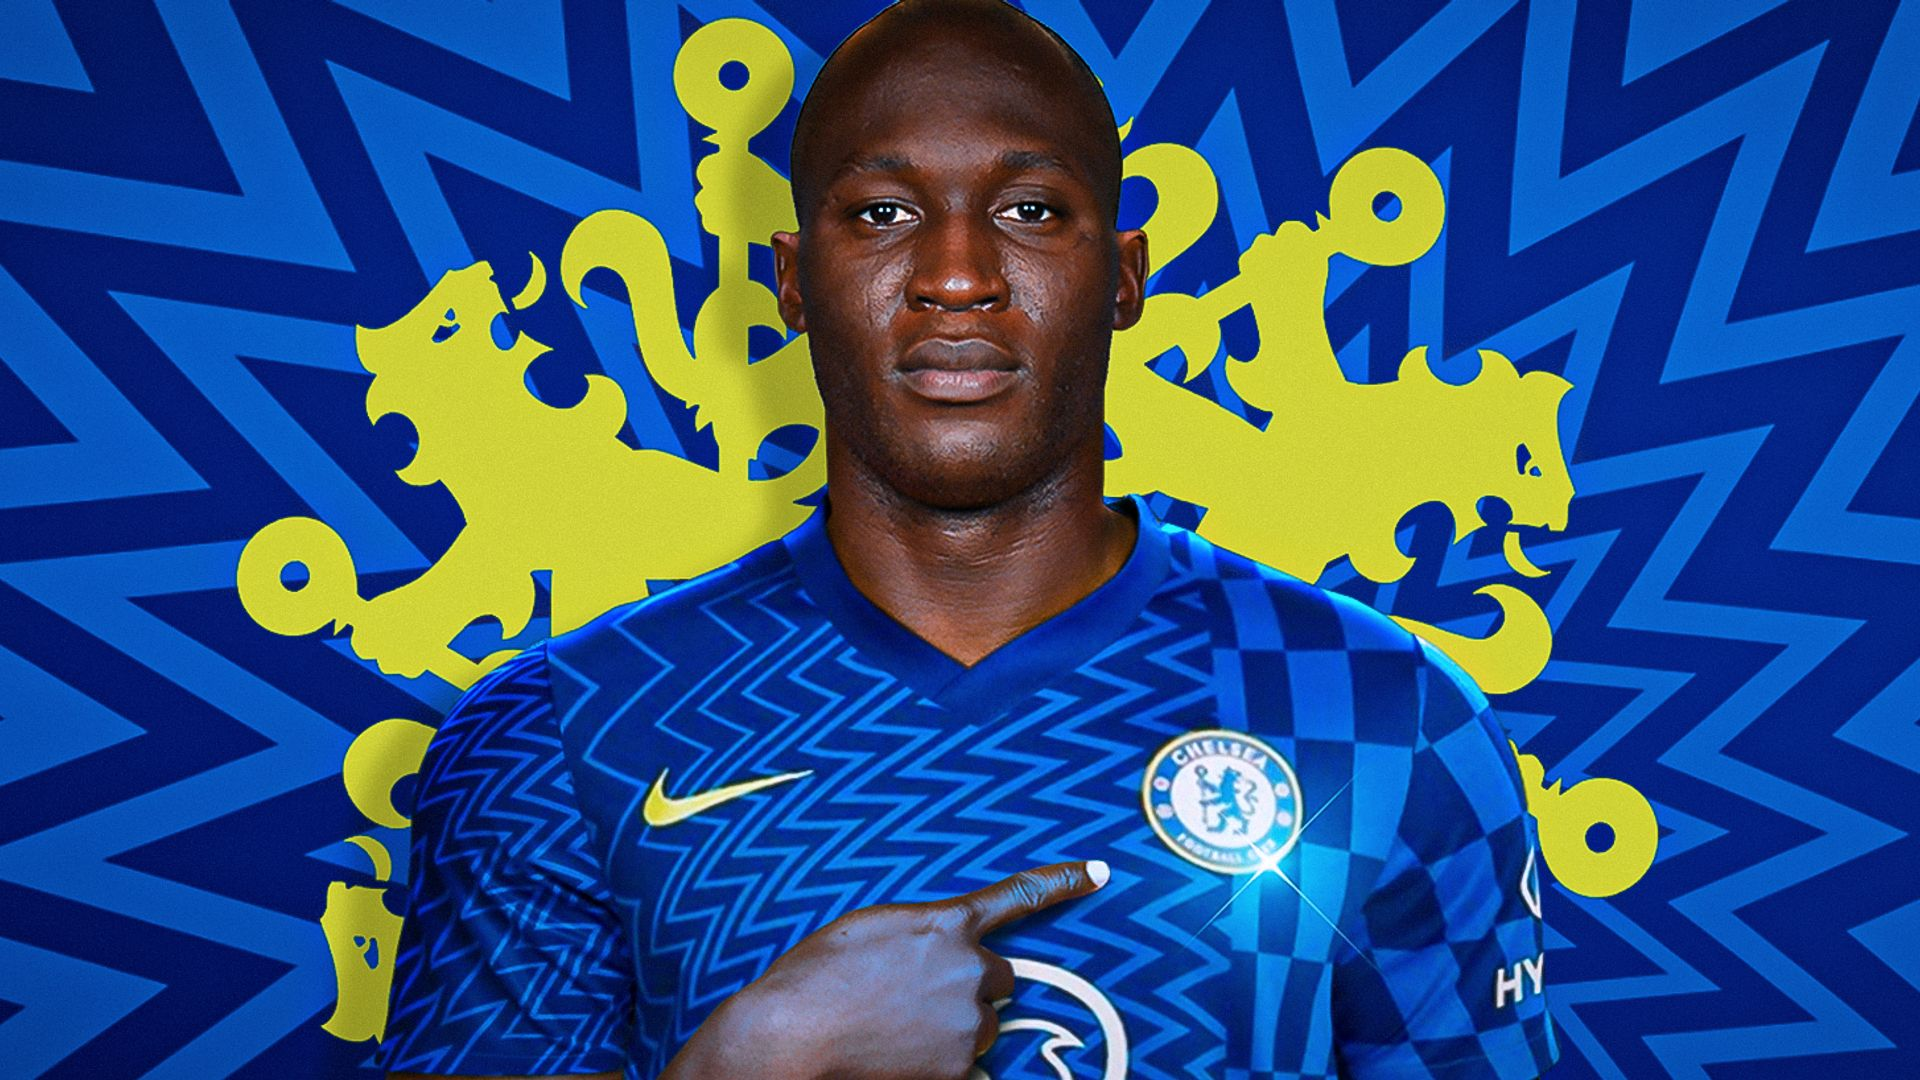 Chelsea re-sign Lukaku from Inter for club-record £97.5m